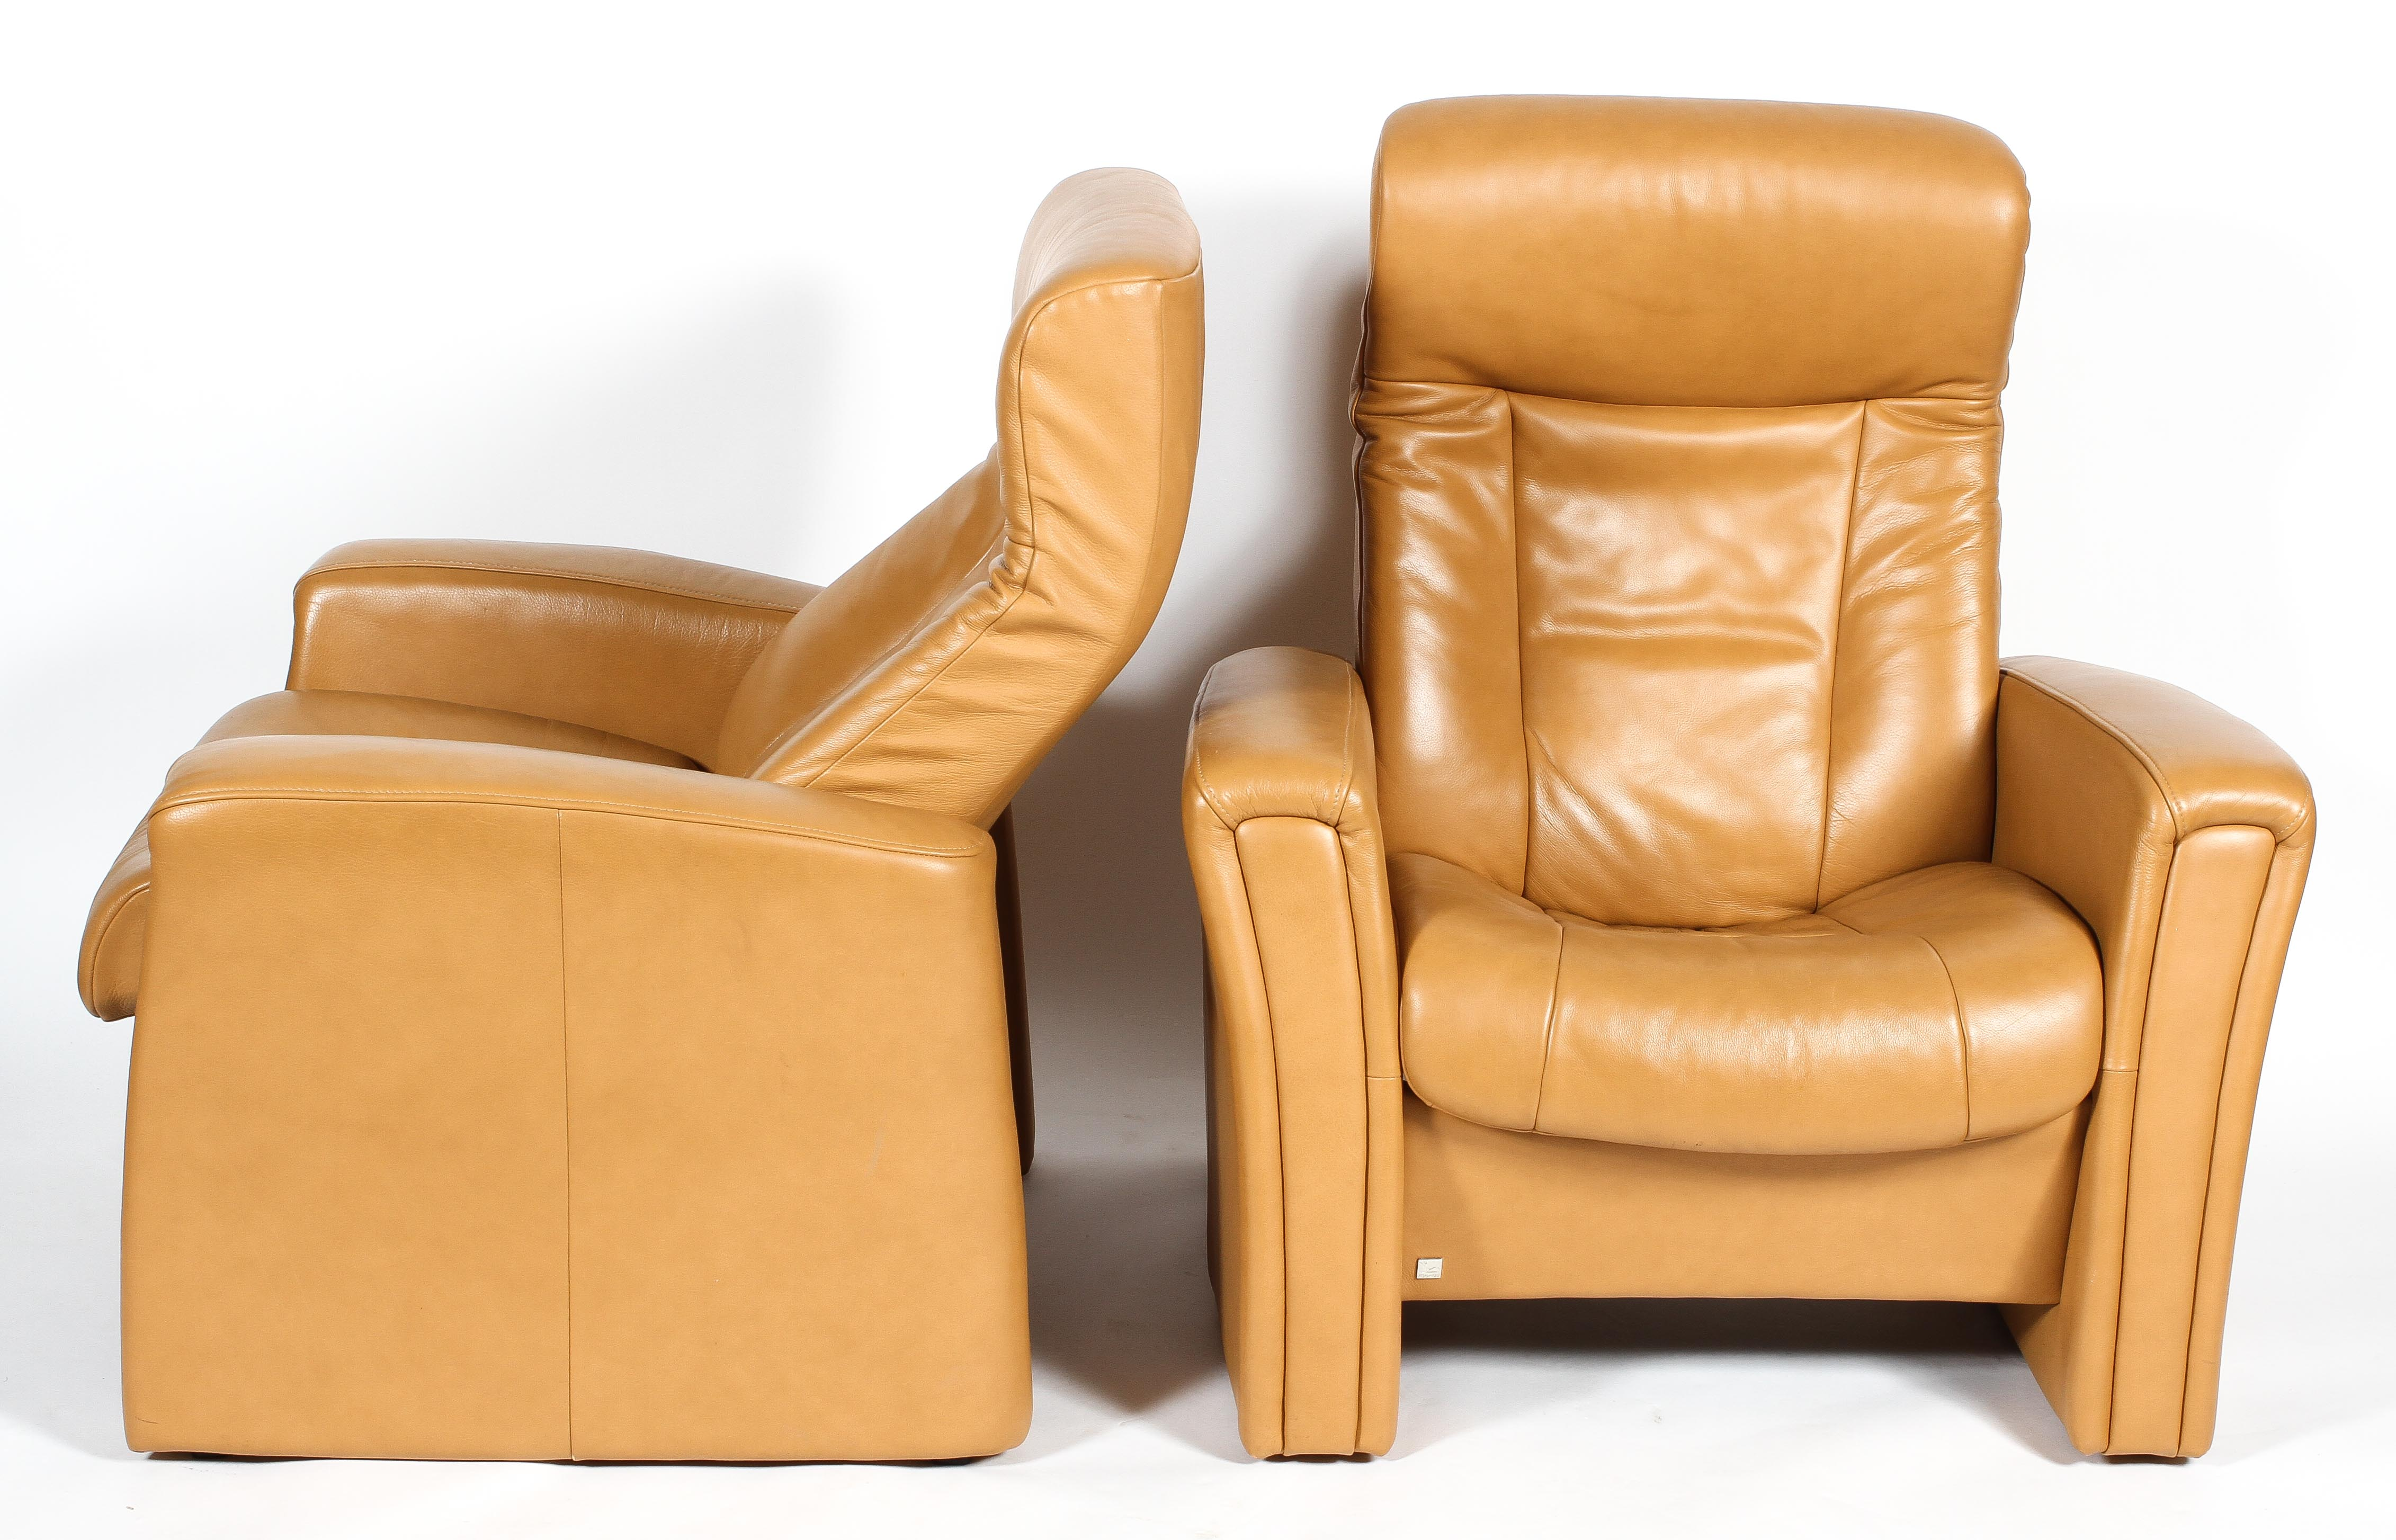 Two Fjords (Norwegian) reclining chairs, upholstered in pale tan leather style fabric, - Image 3 of 3